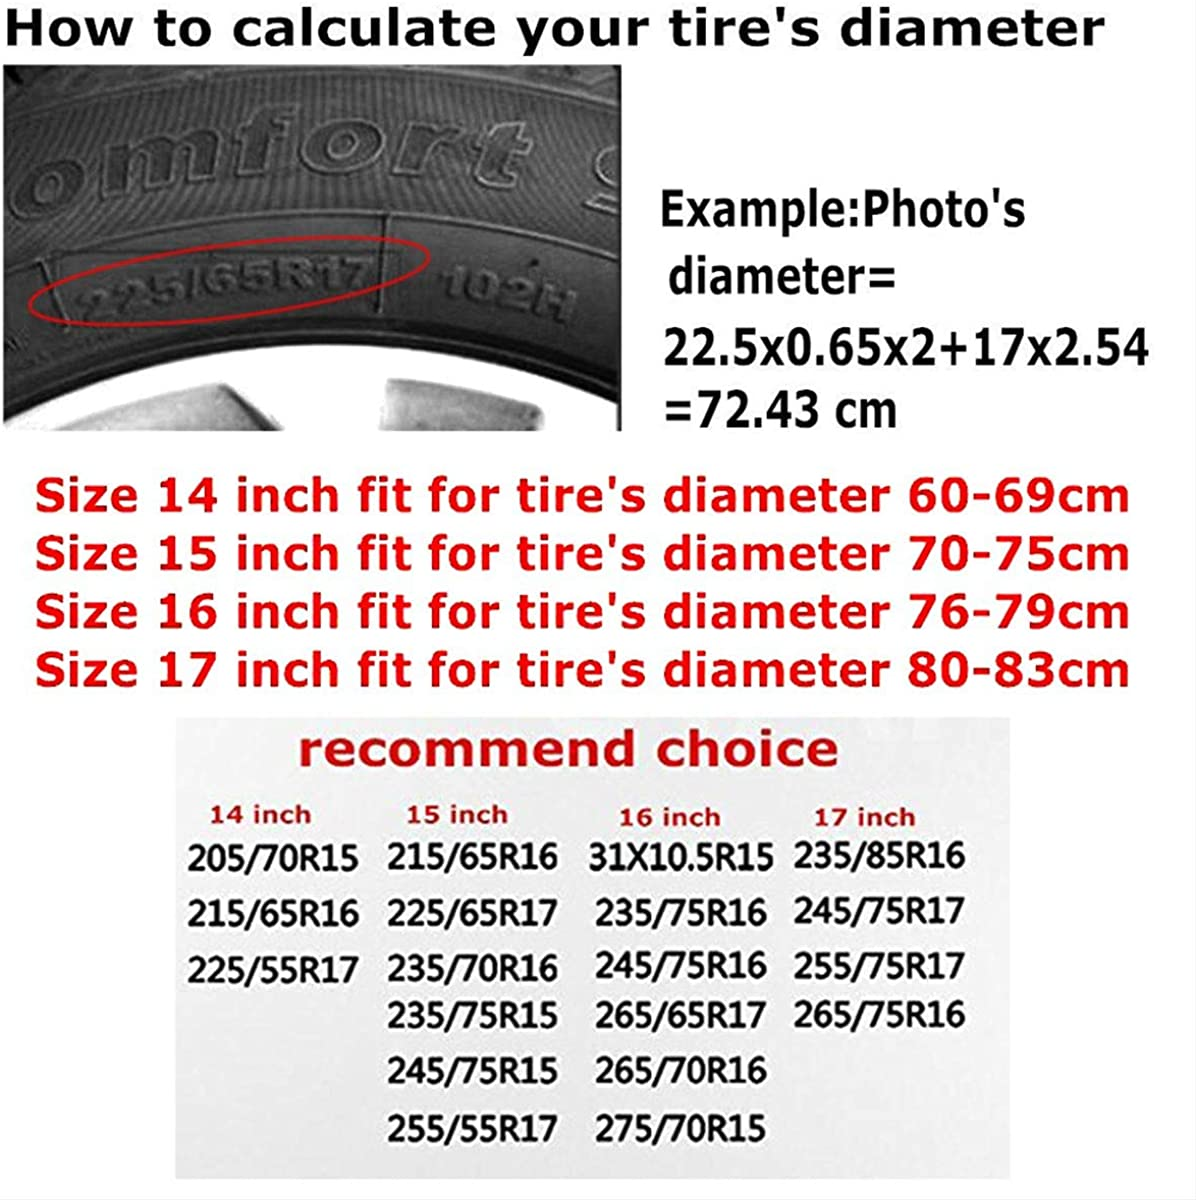 14,15,16,17 Inch JT270 Colorful Style Dustproof and Waterproof Tire Cover,Hunting Fishing and Loving Everyday Universal Tire Covers for Jeep,Trailers,Rvs,Suvs,Trucks and Many Vehicles